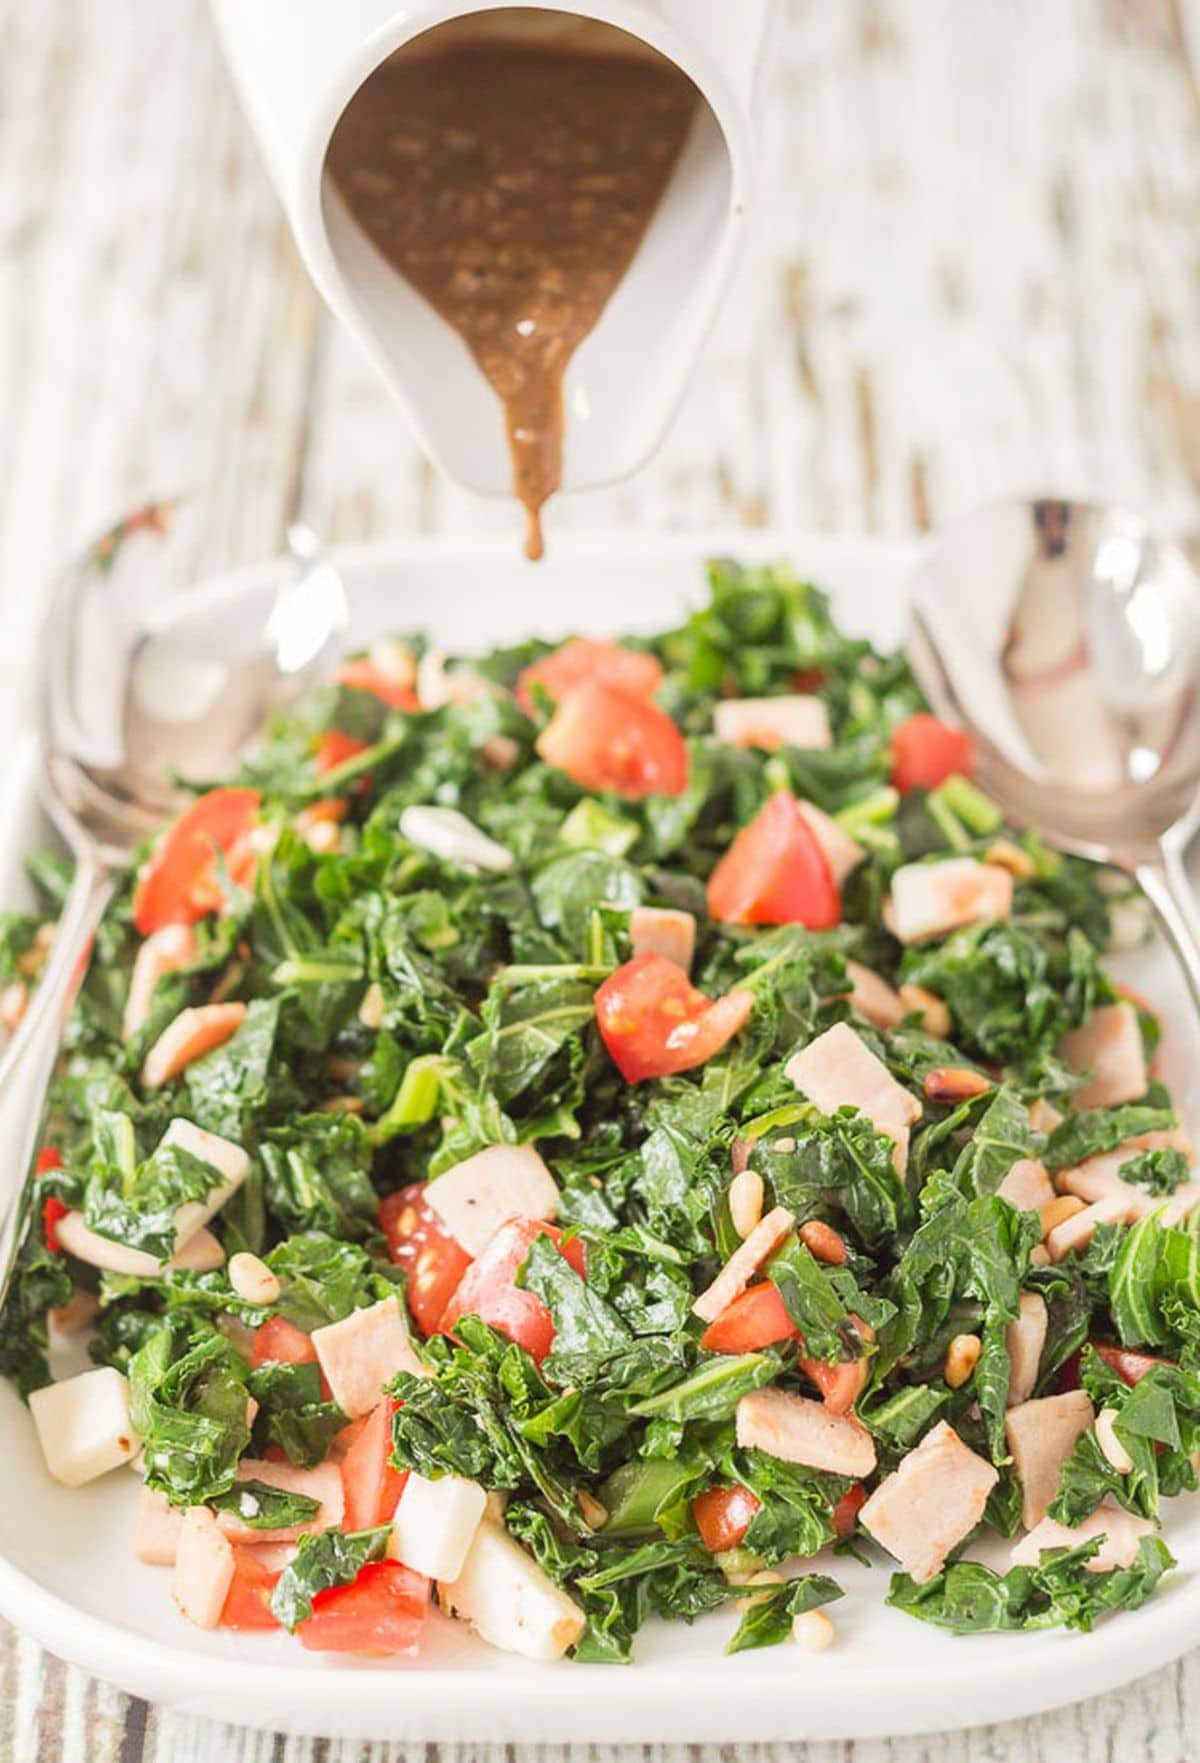 Balsamic dressing being poured from a jug onto a platter of kale and turkey bacon salad.